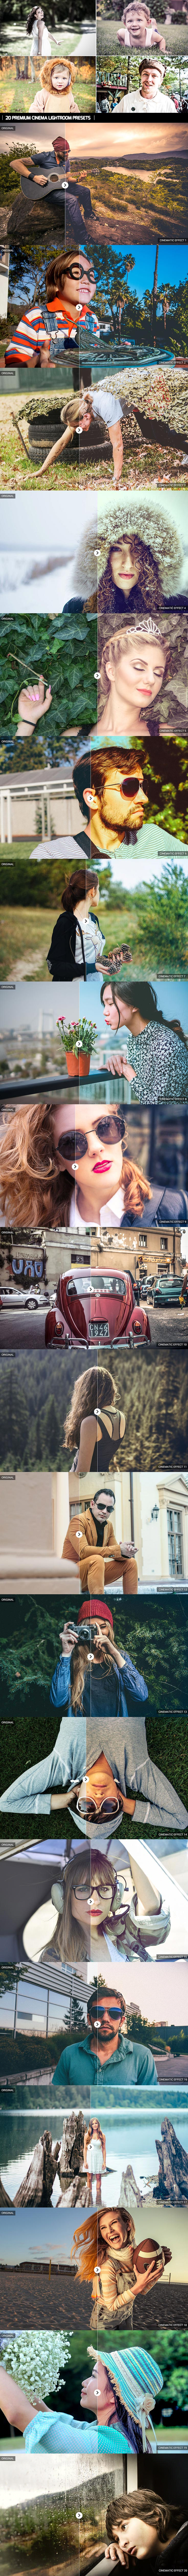 Free Cinema Lightroom Presets